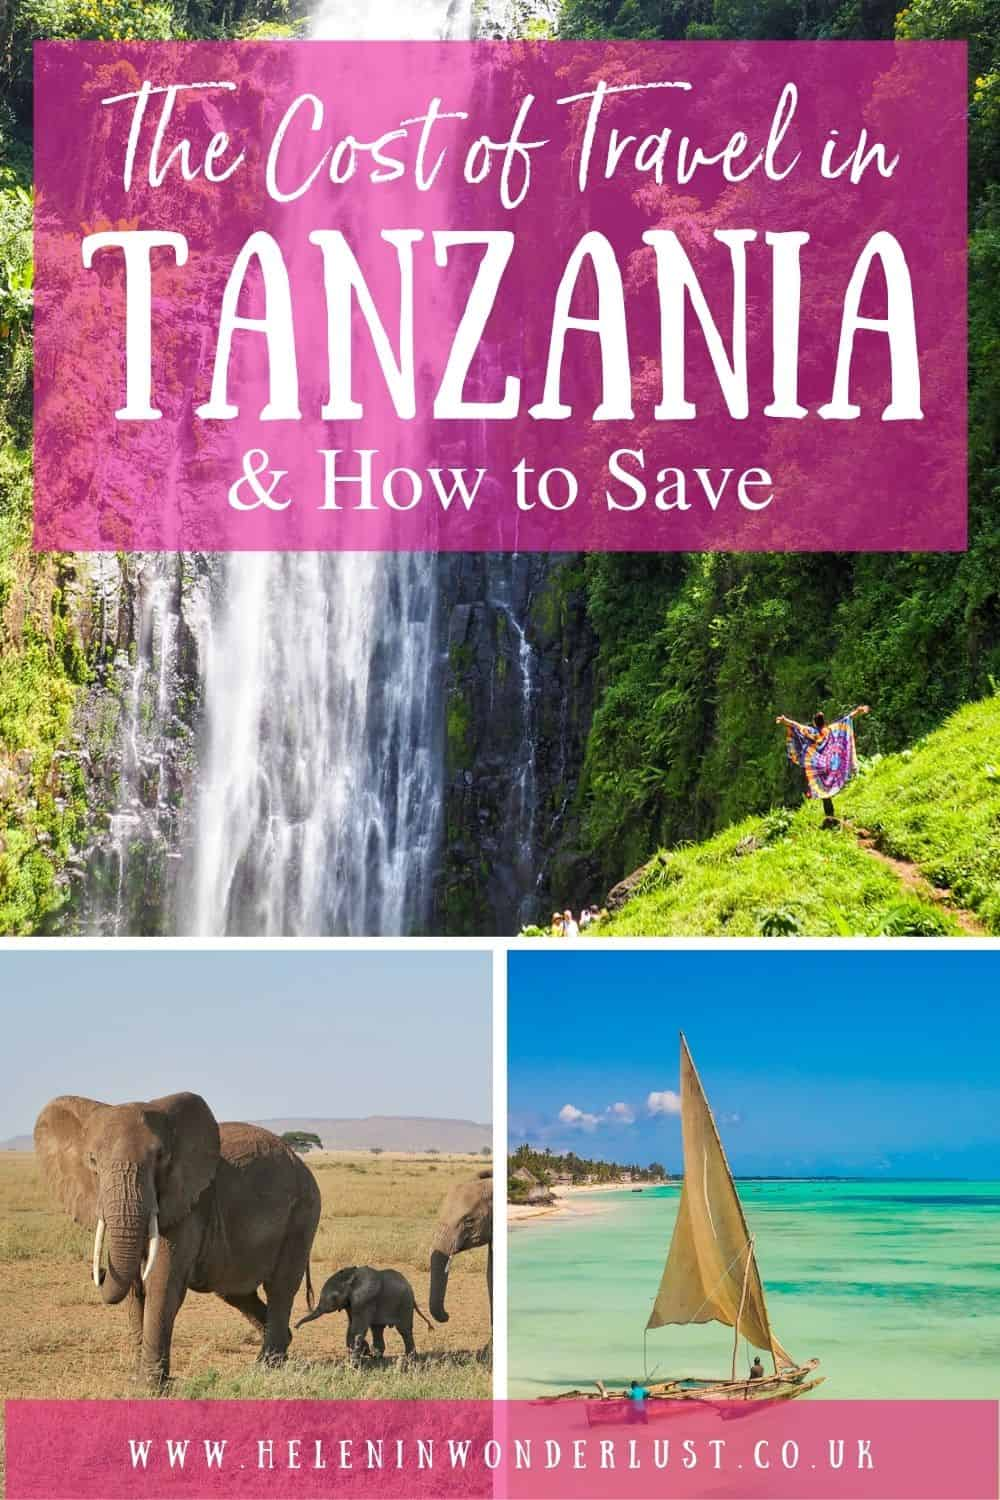 The Cost of Travel in Tanzania & How to Save